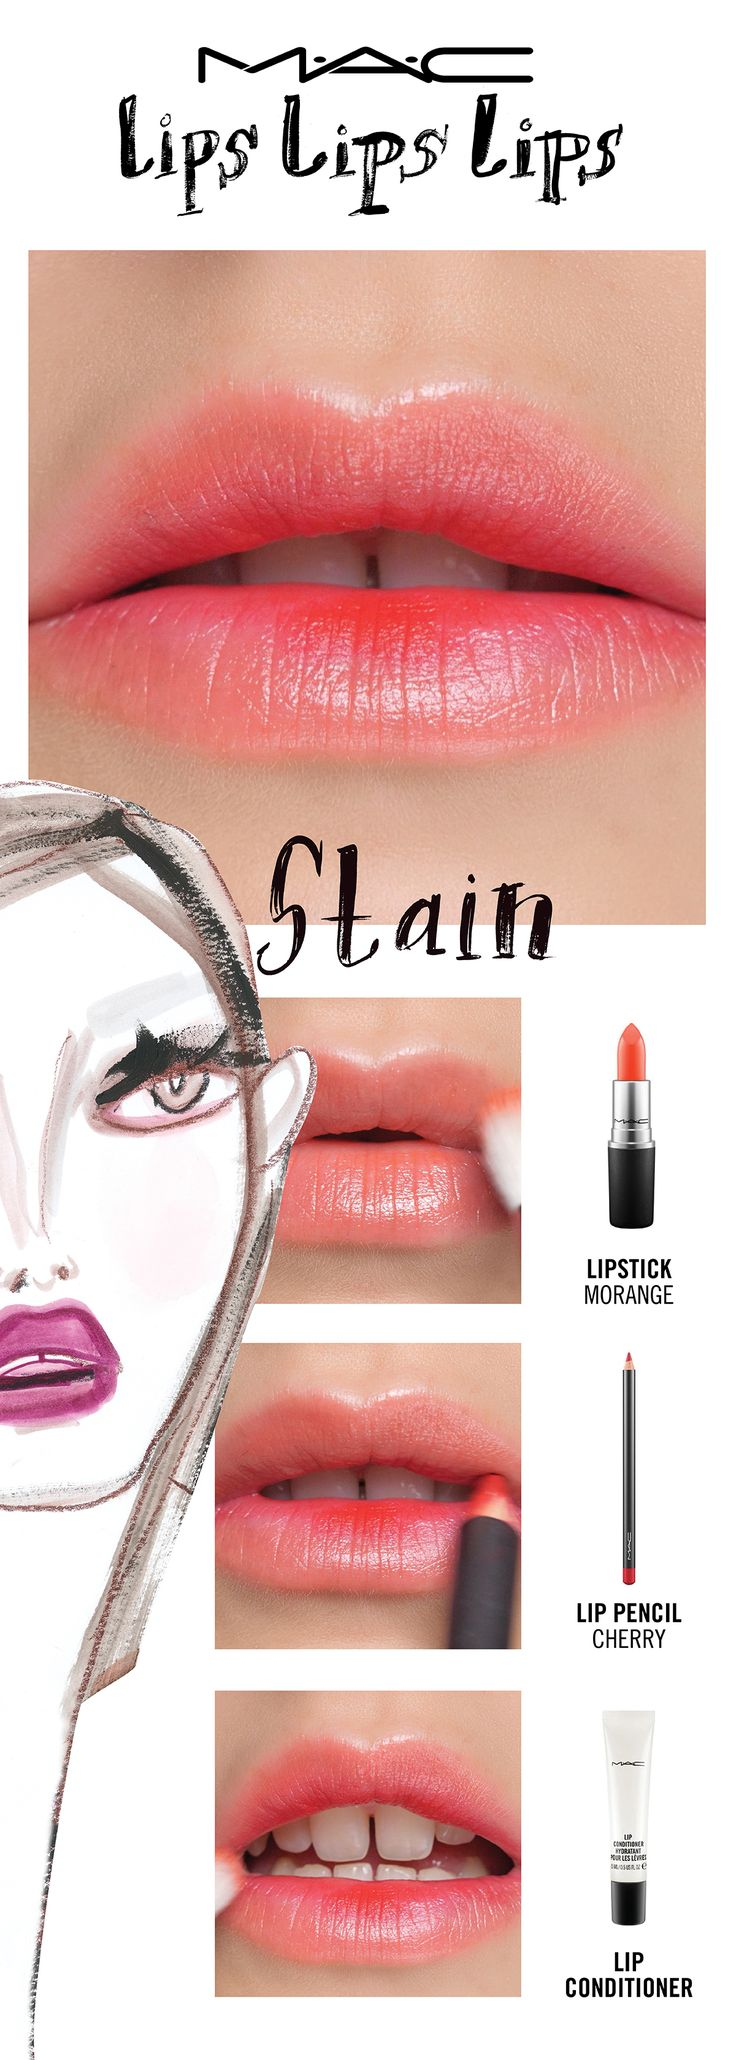 It's summer! Go for a juicy, just-bitten look. Bold colour looks gorgeously natural when applied as a lip stain. For a delicious effect, try The Sherbet Stain seen here! Try a lip trend, then make it (Dyed Hair)